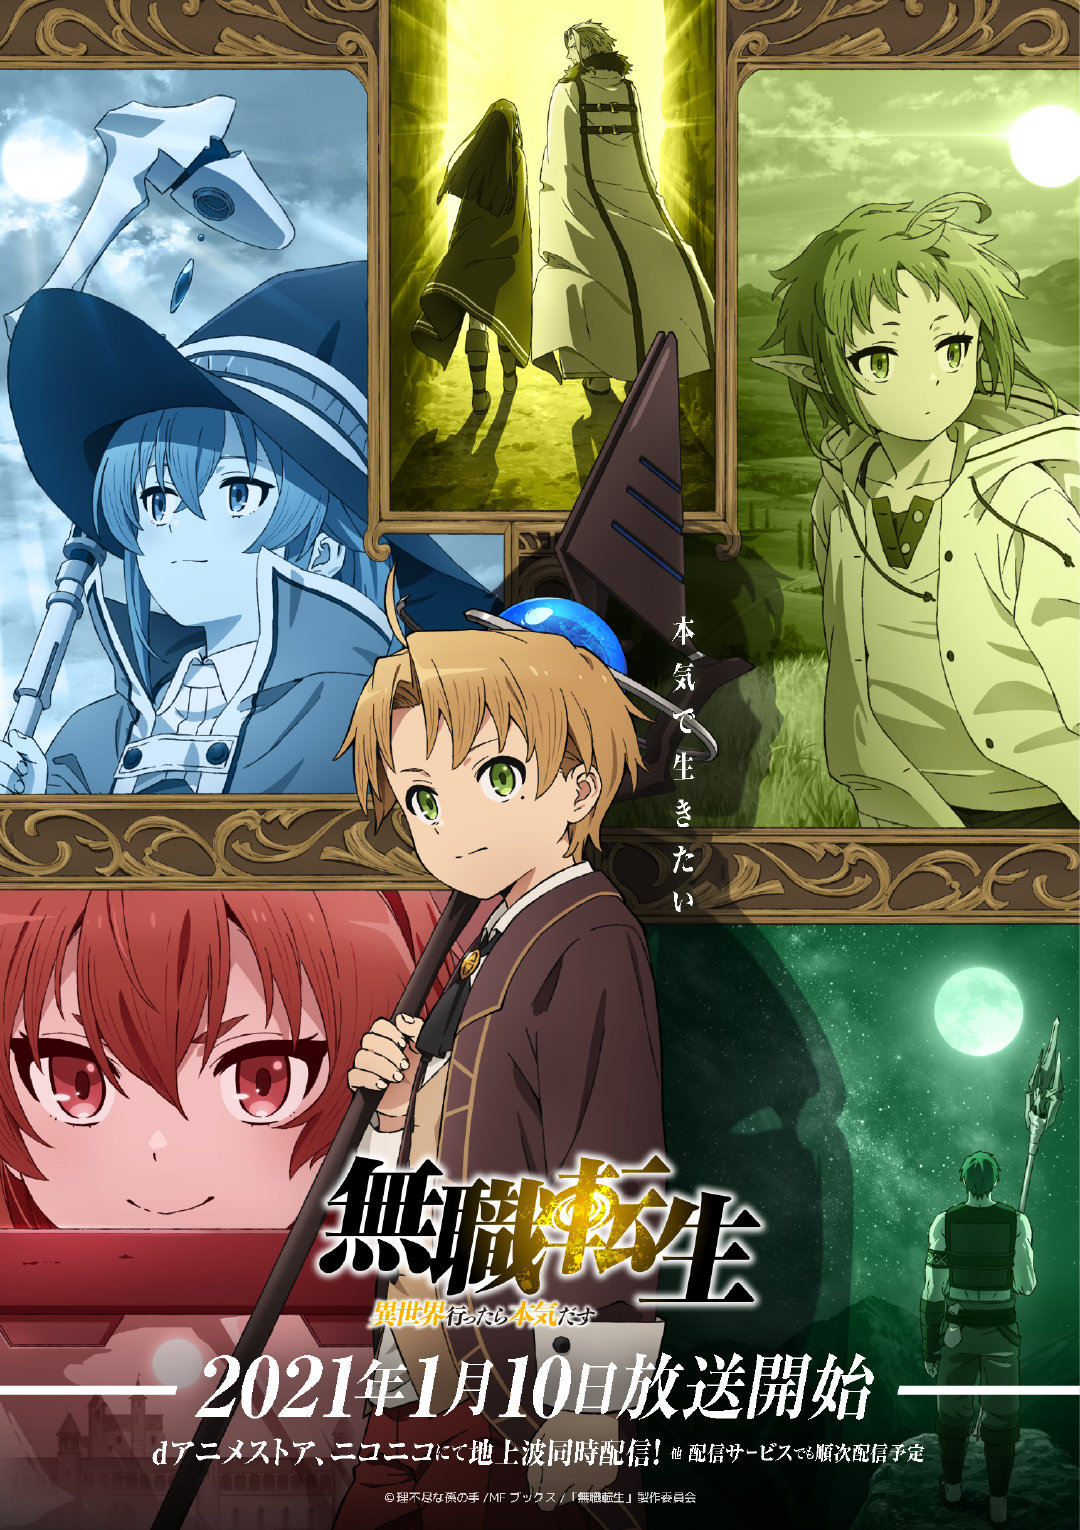 Featured image for Mushoku Tensei, Jobless Reincarnation (First Cour): Not the First, but possibly The Best